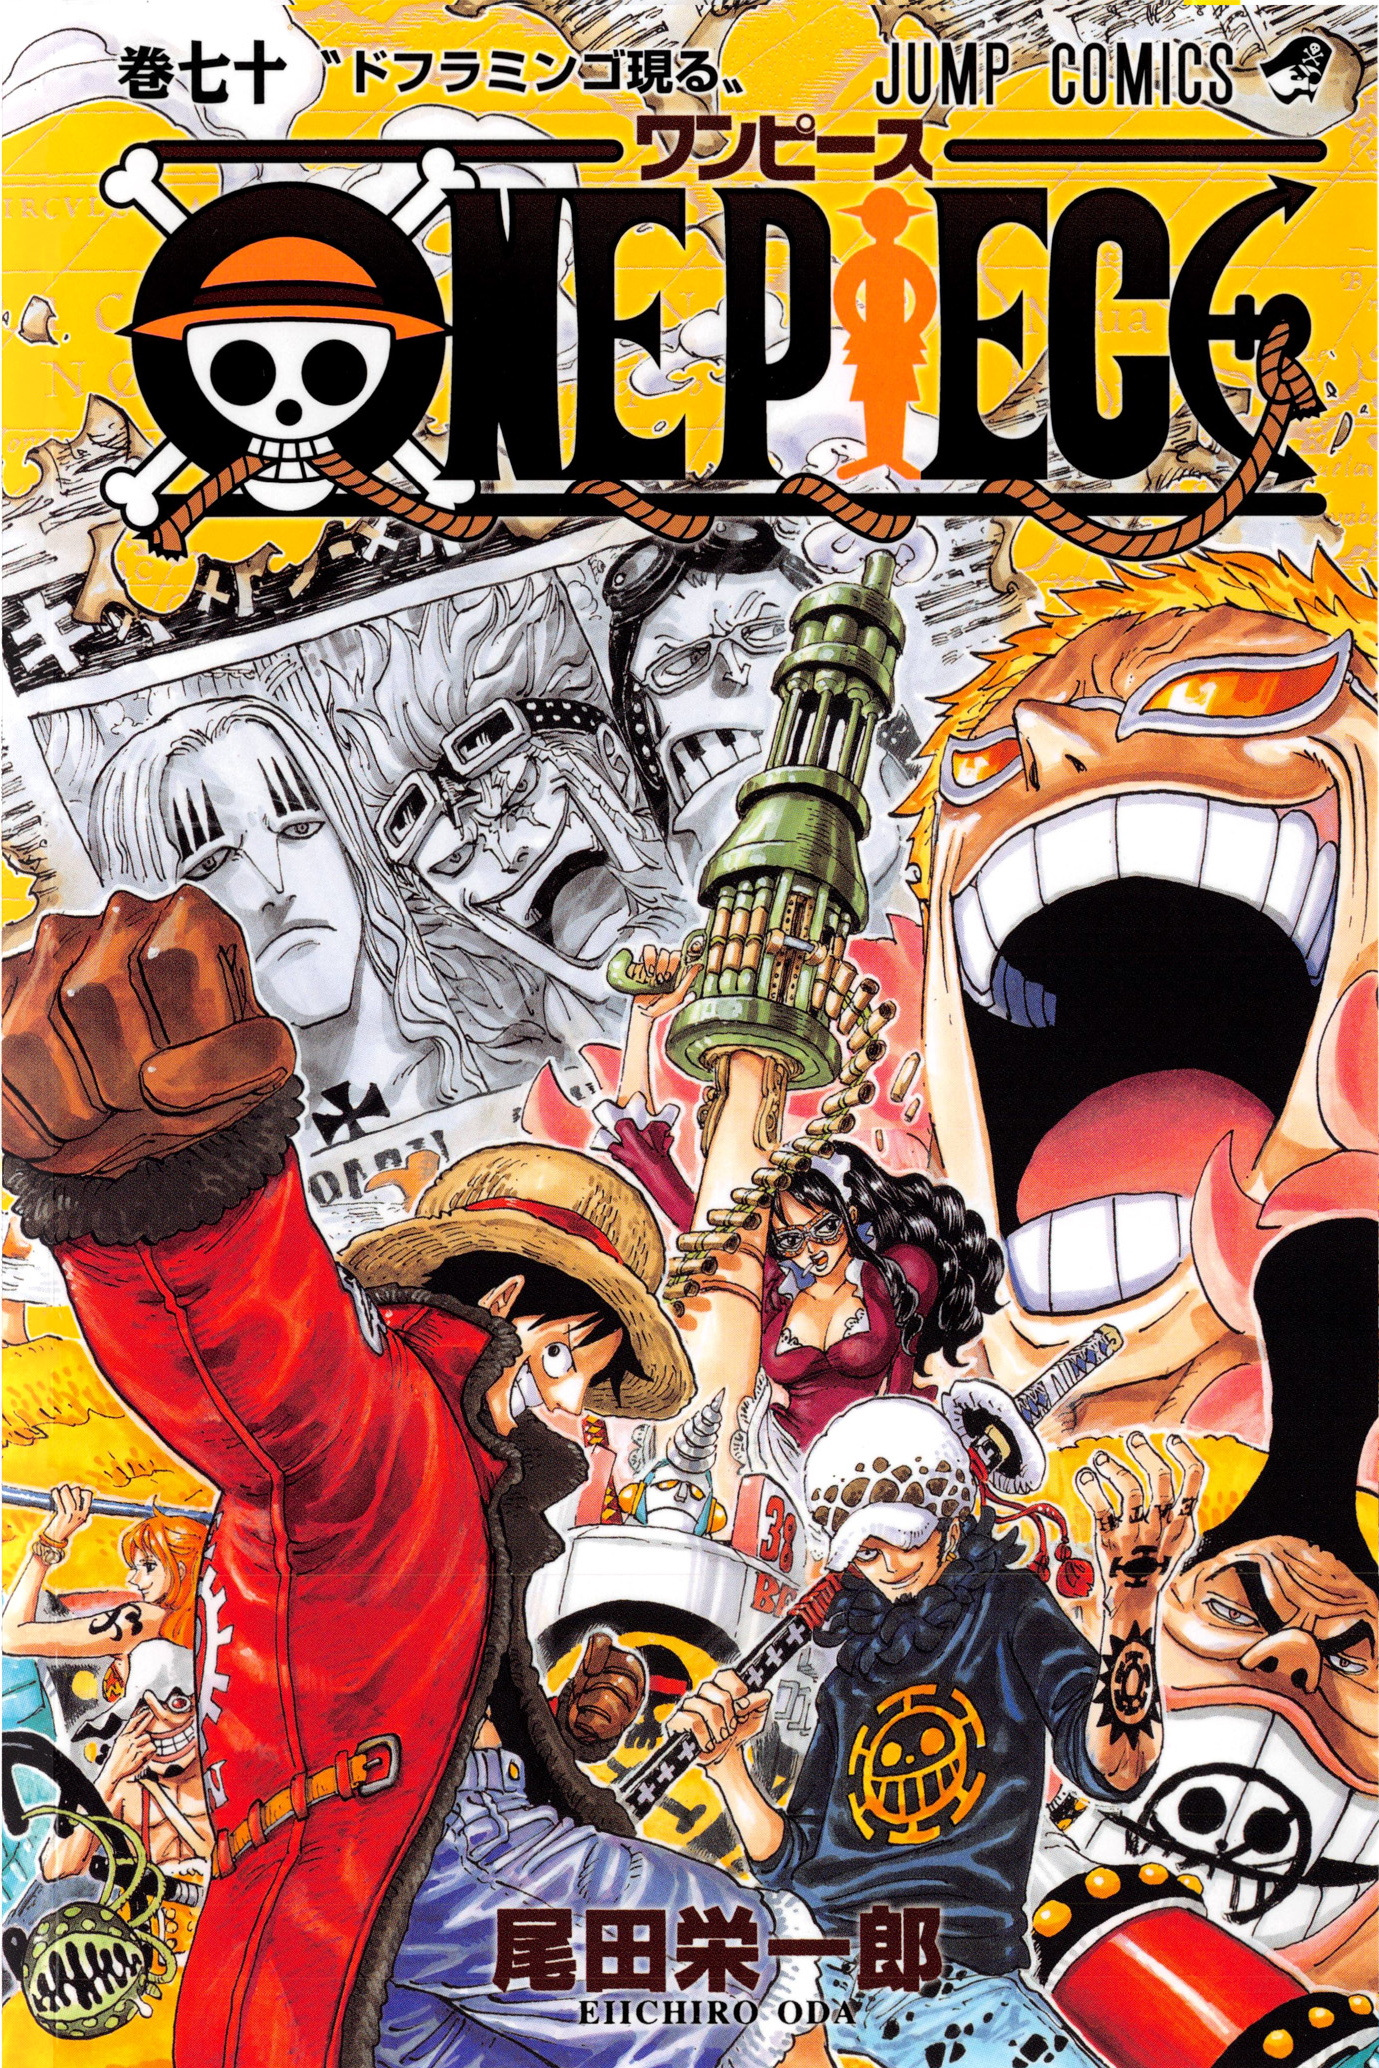 The 25 Most Anticipated Manga Ending Haruhichan.com One Piece manga cover